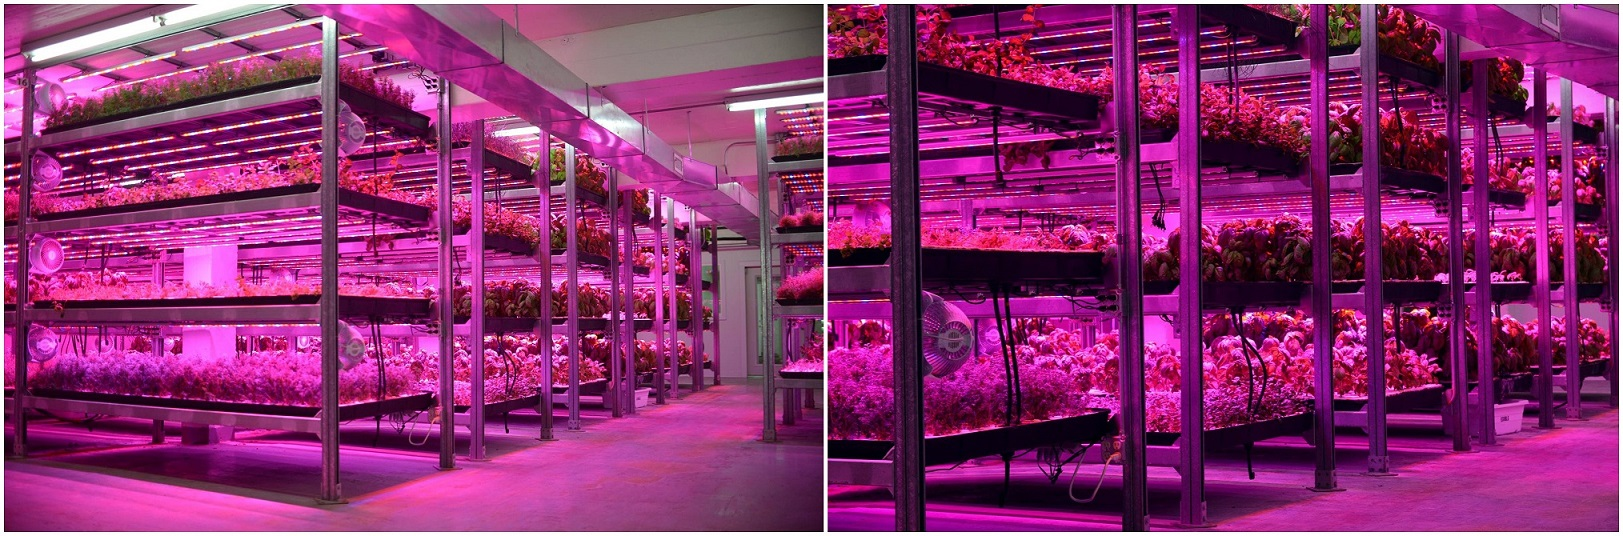 54w Led Bar grow light